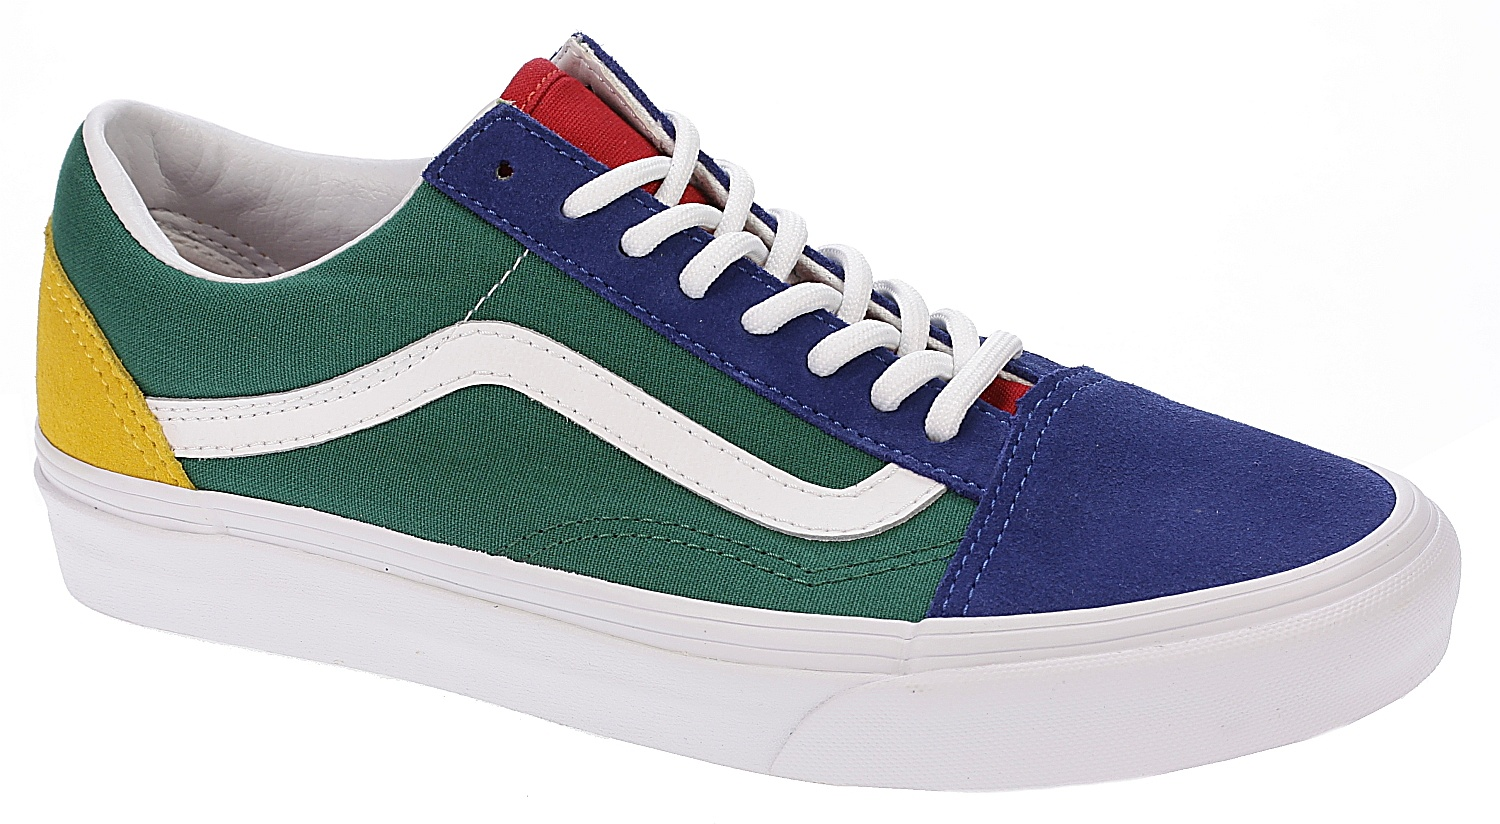 vans old skool blue red yellow green